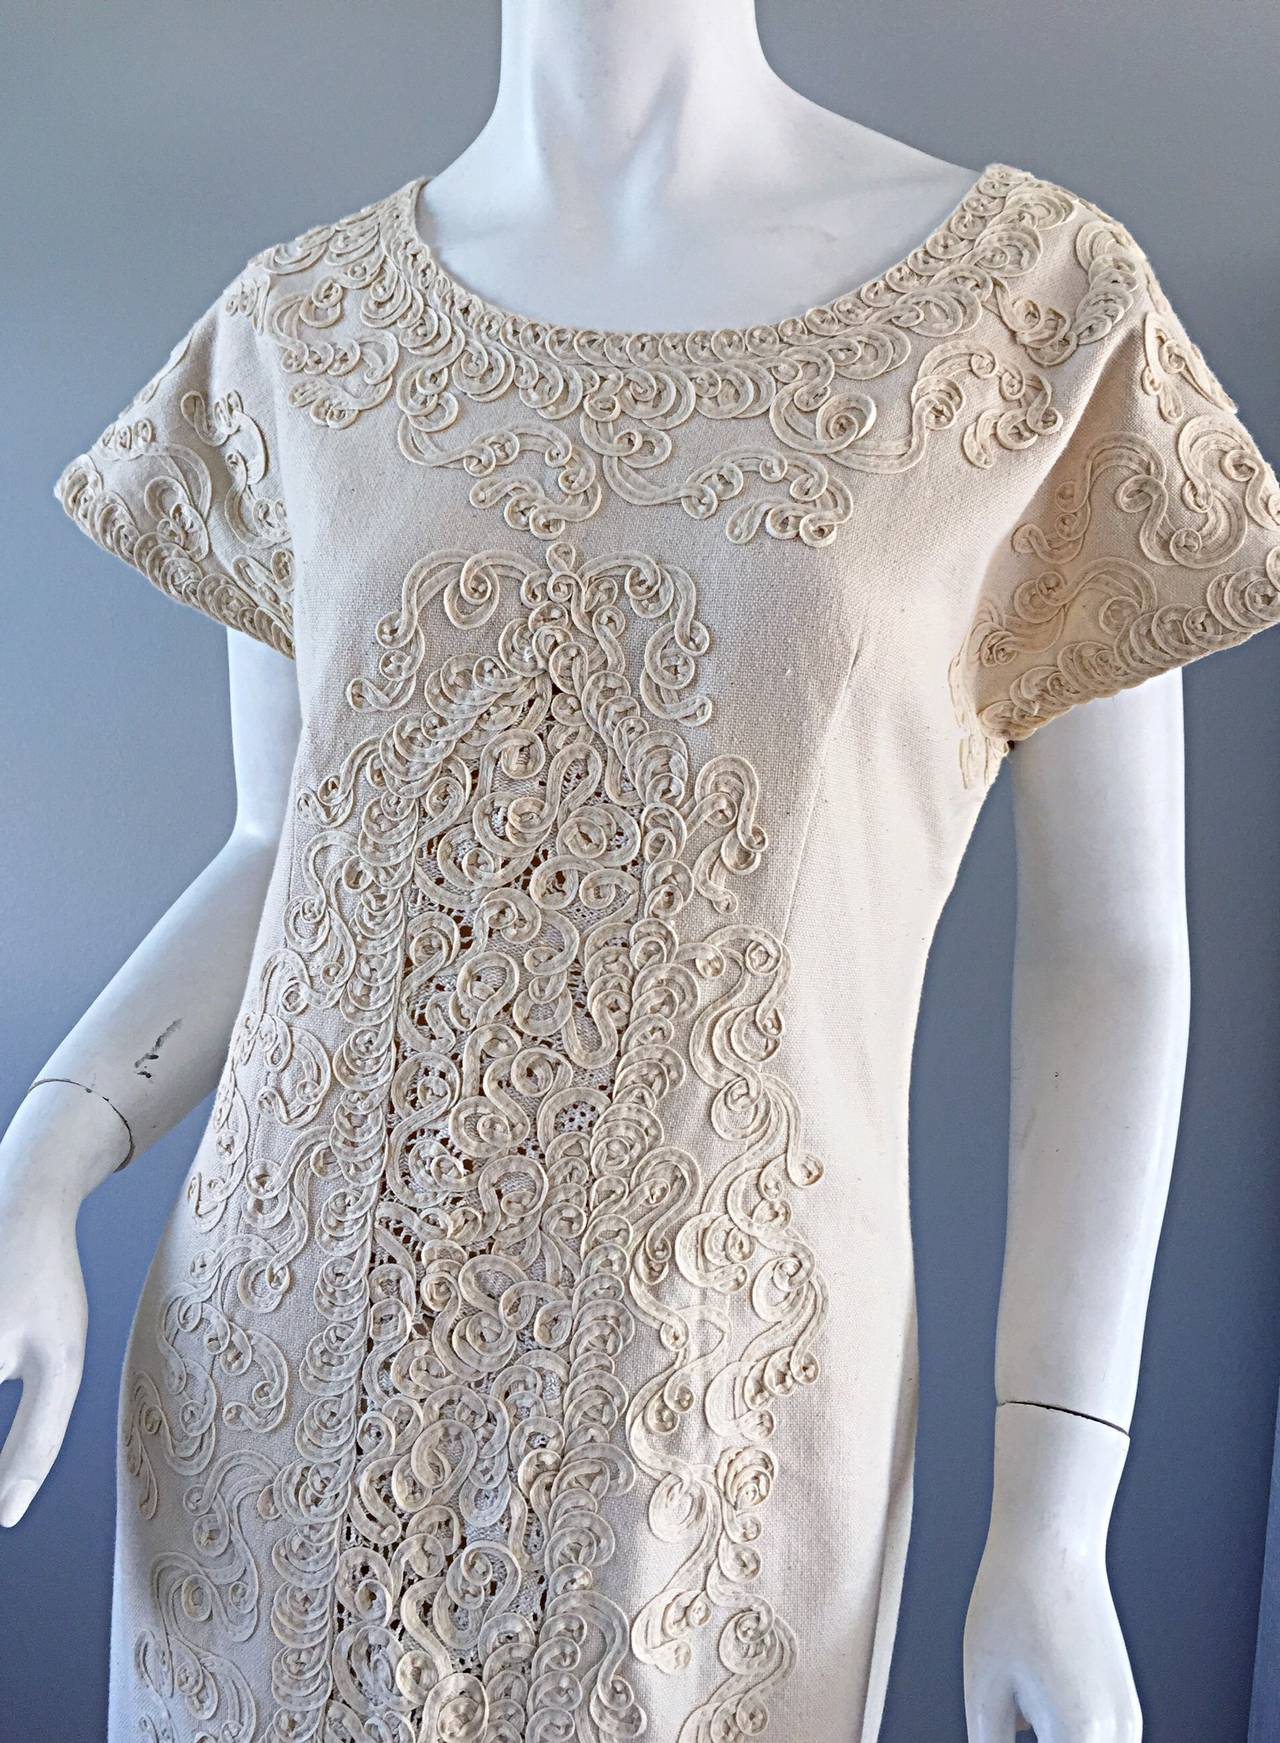 id v mexican wedding dress Vintage Tachi Castillo Ivory Hand Embroidered Cotton Mexican Wedding Dress 2